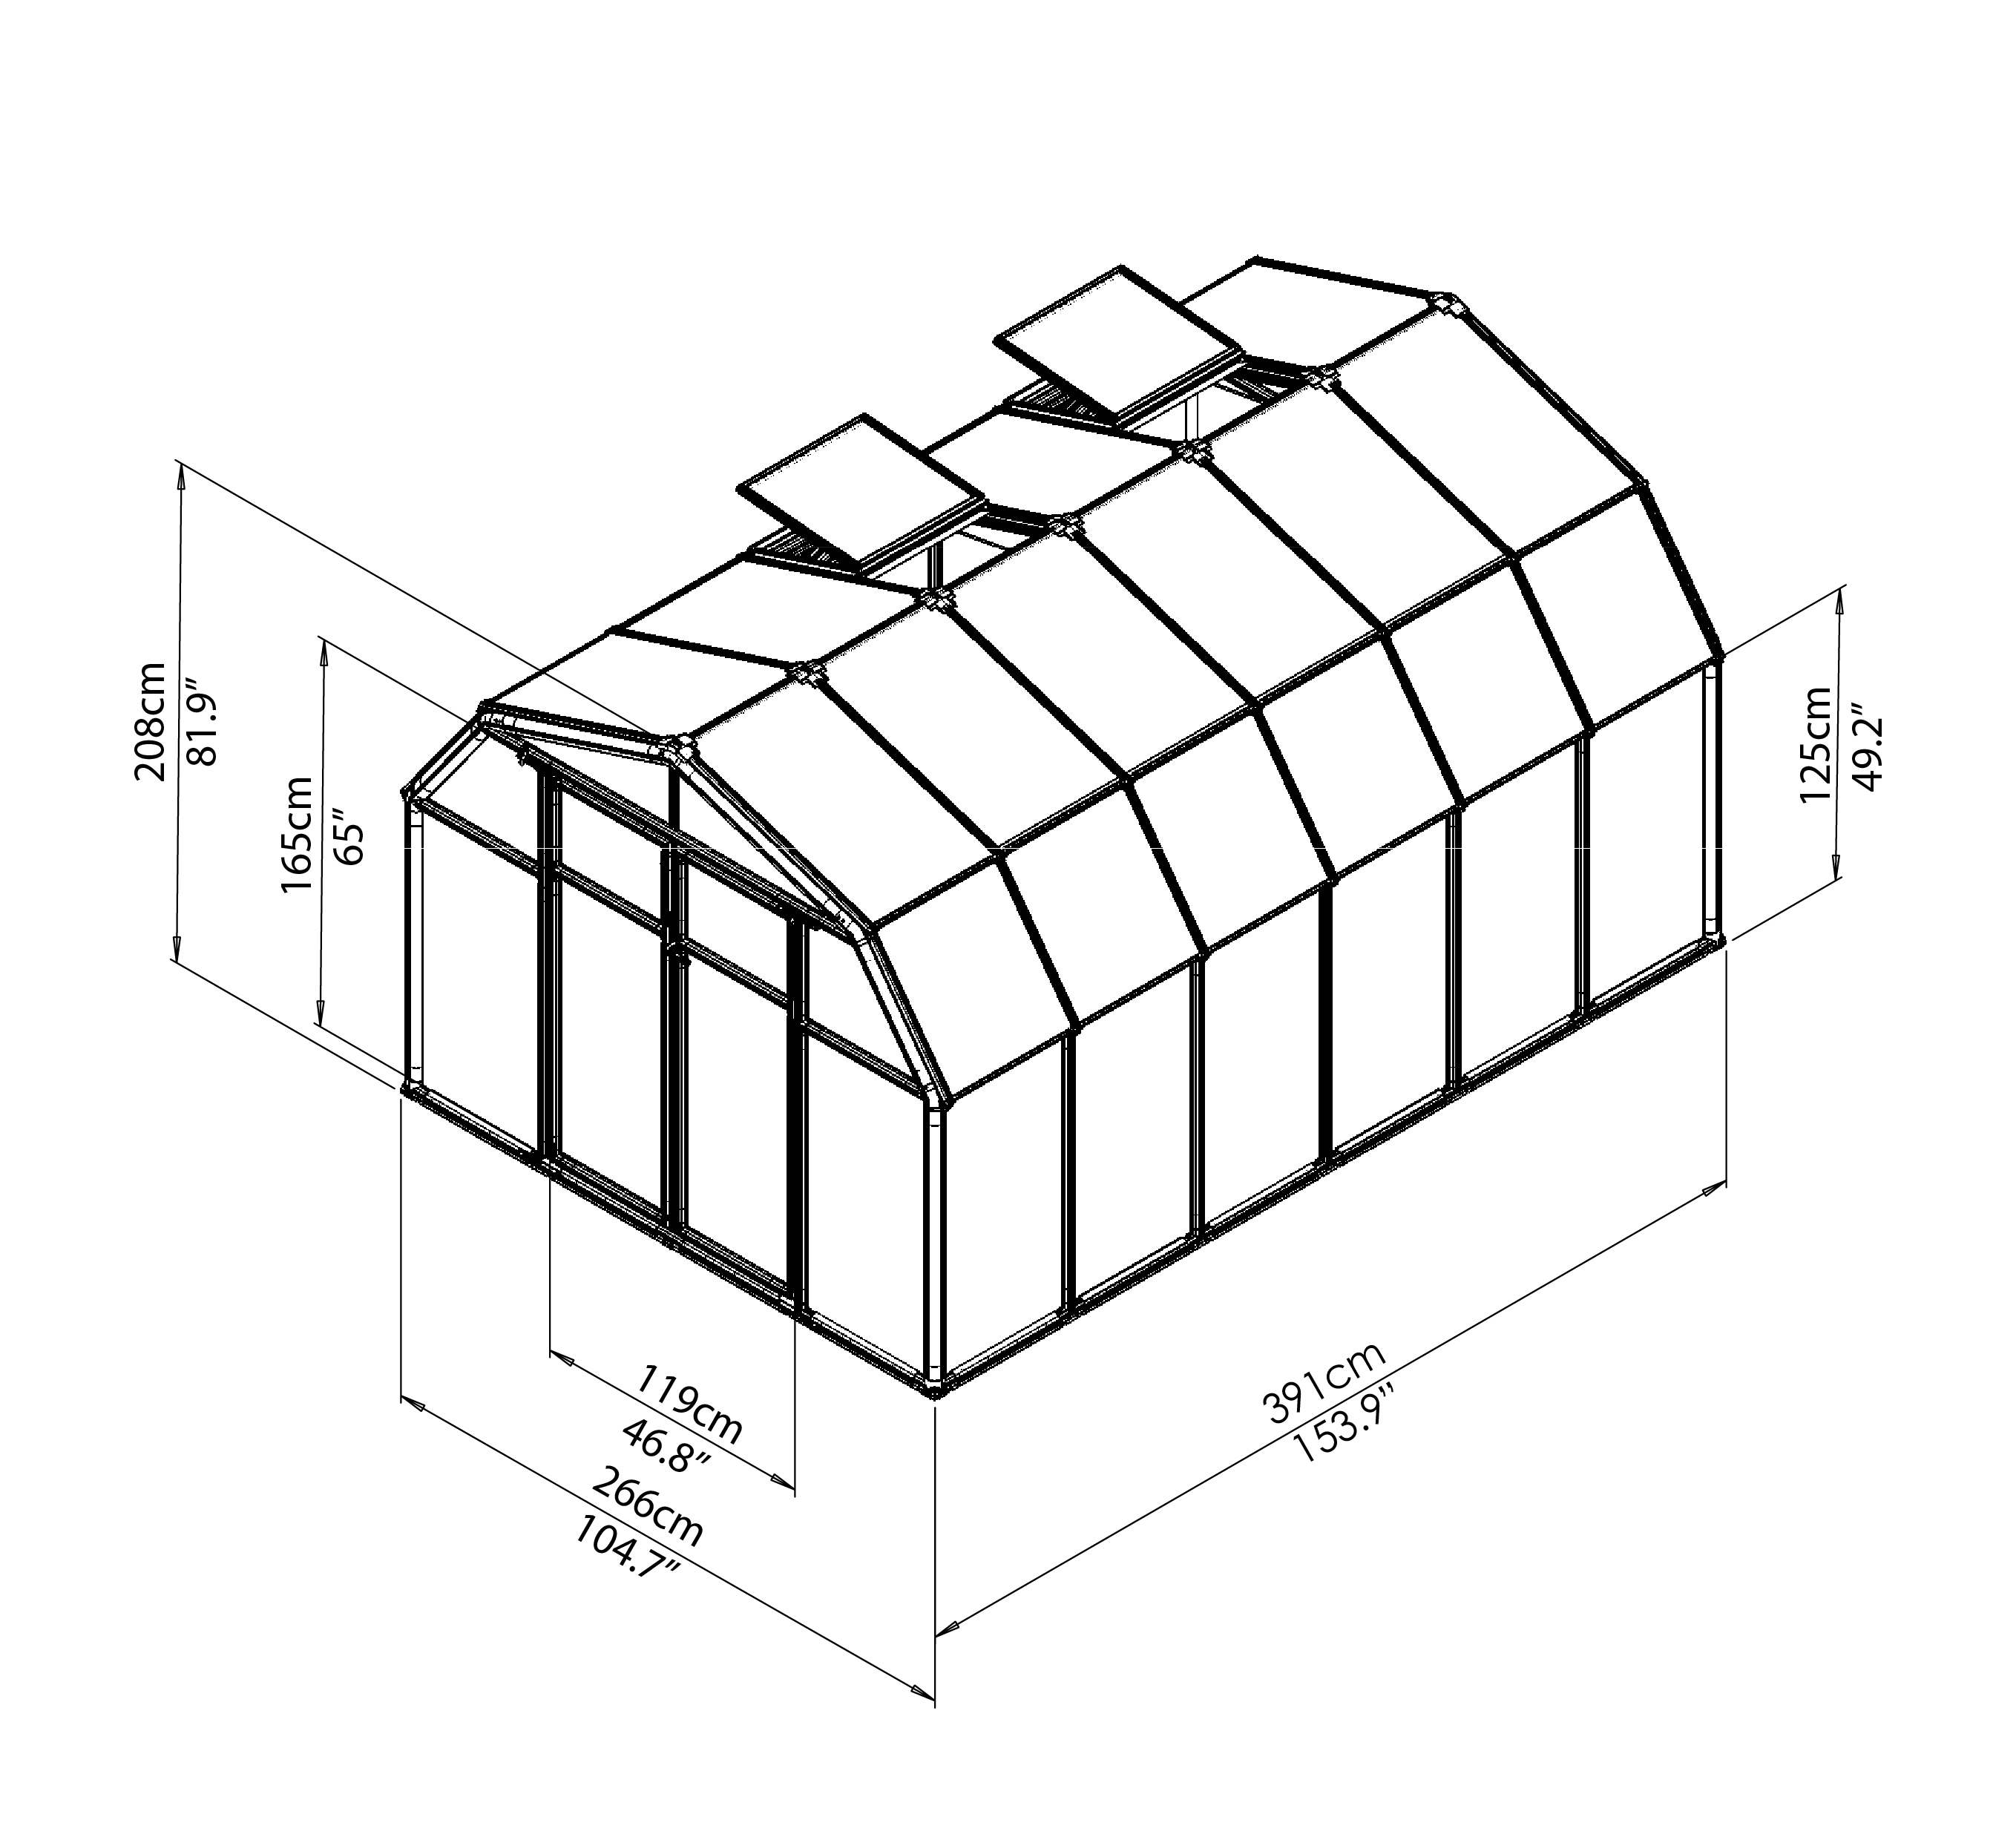 rion-greenhouses-hobbygardener-8x12-drawing-isoview.jpg